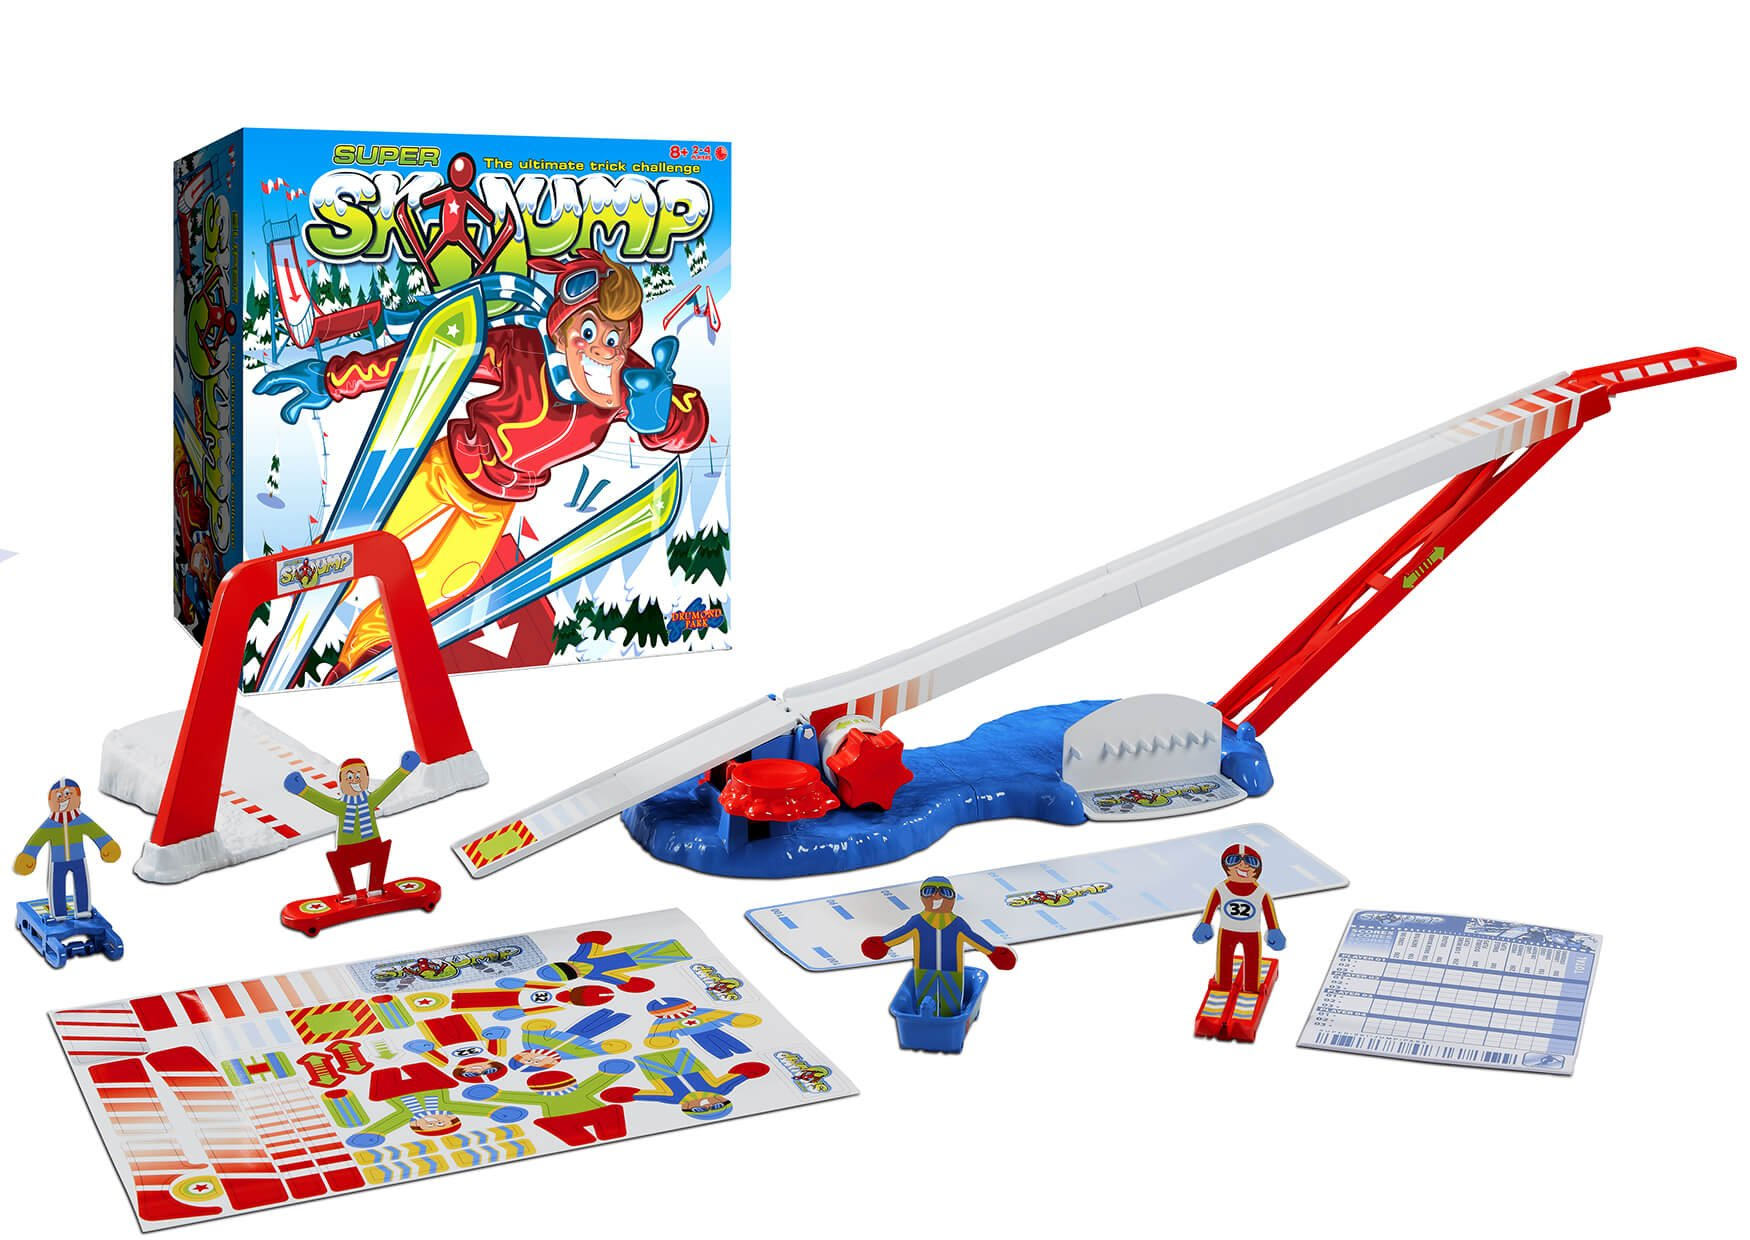 super ski jump tabletop game from Drumond Park box contents